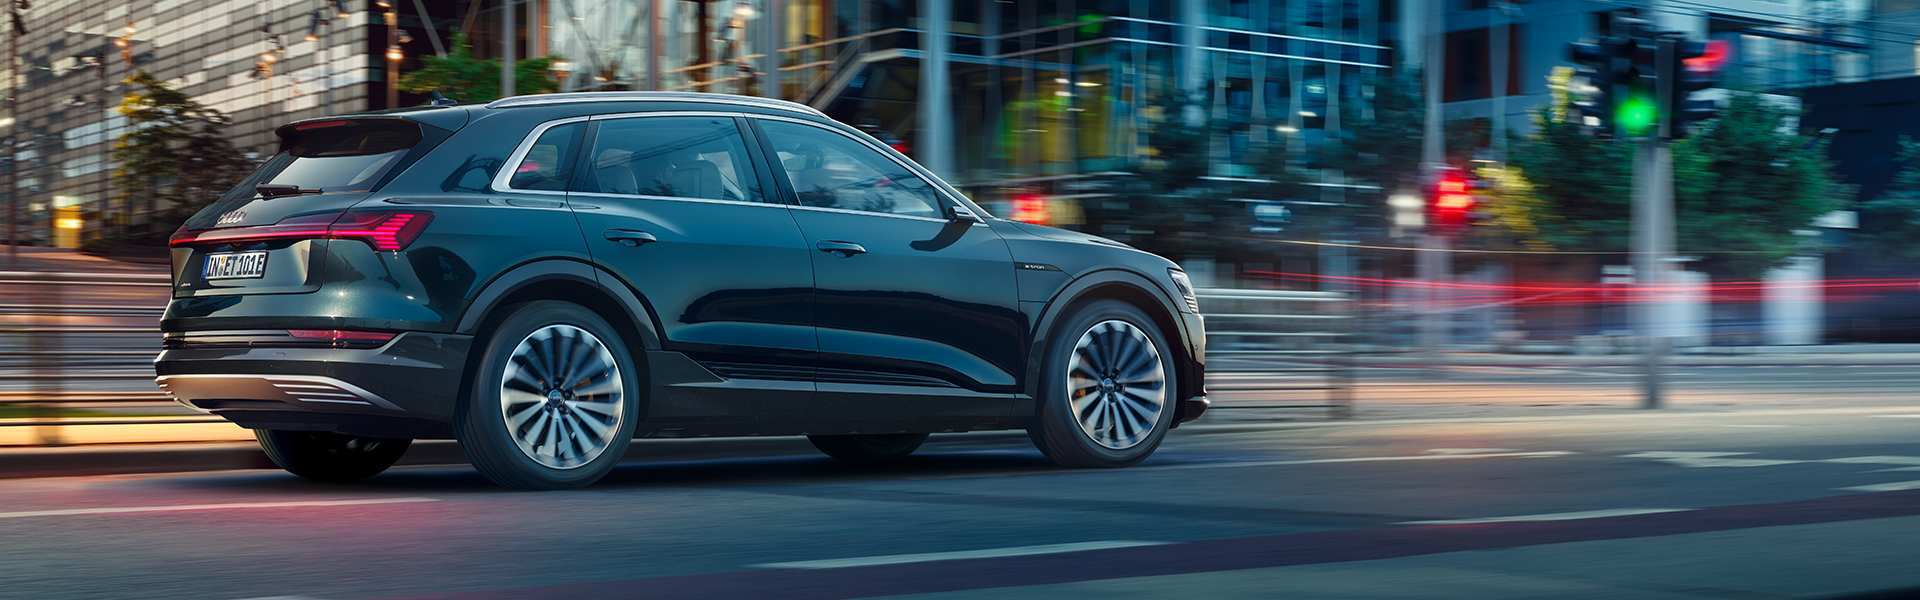 92 The Best 2019 Audi E Tron Quattro Price Price And Review